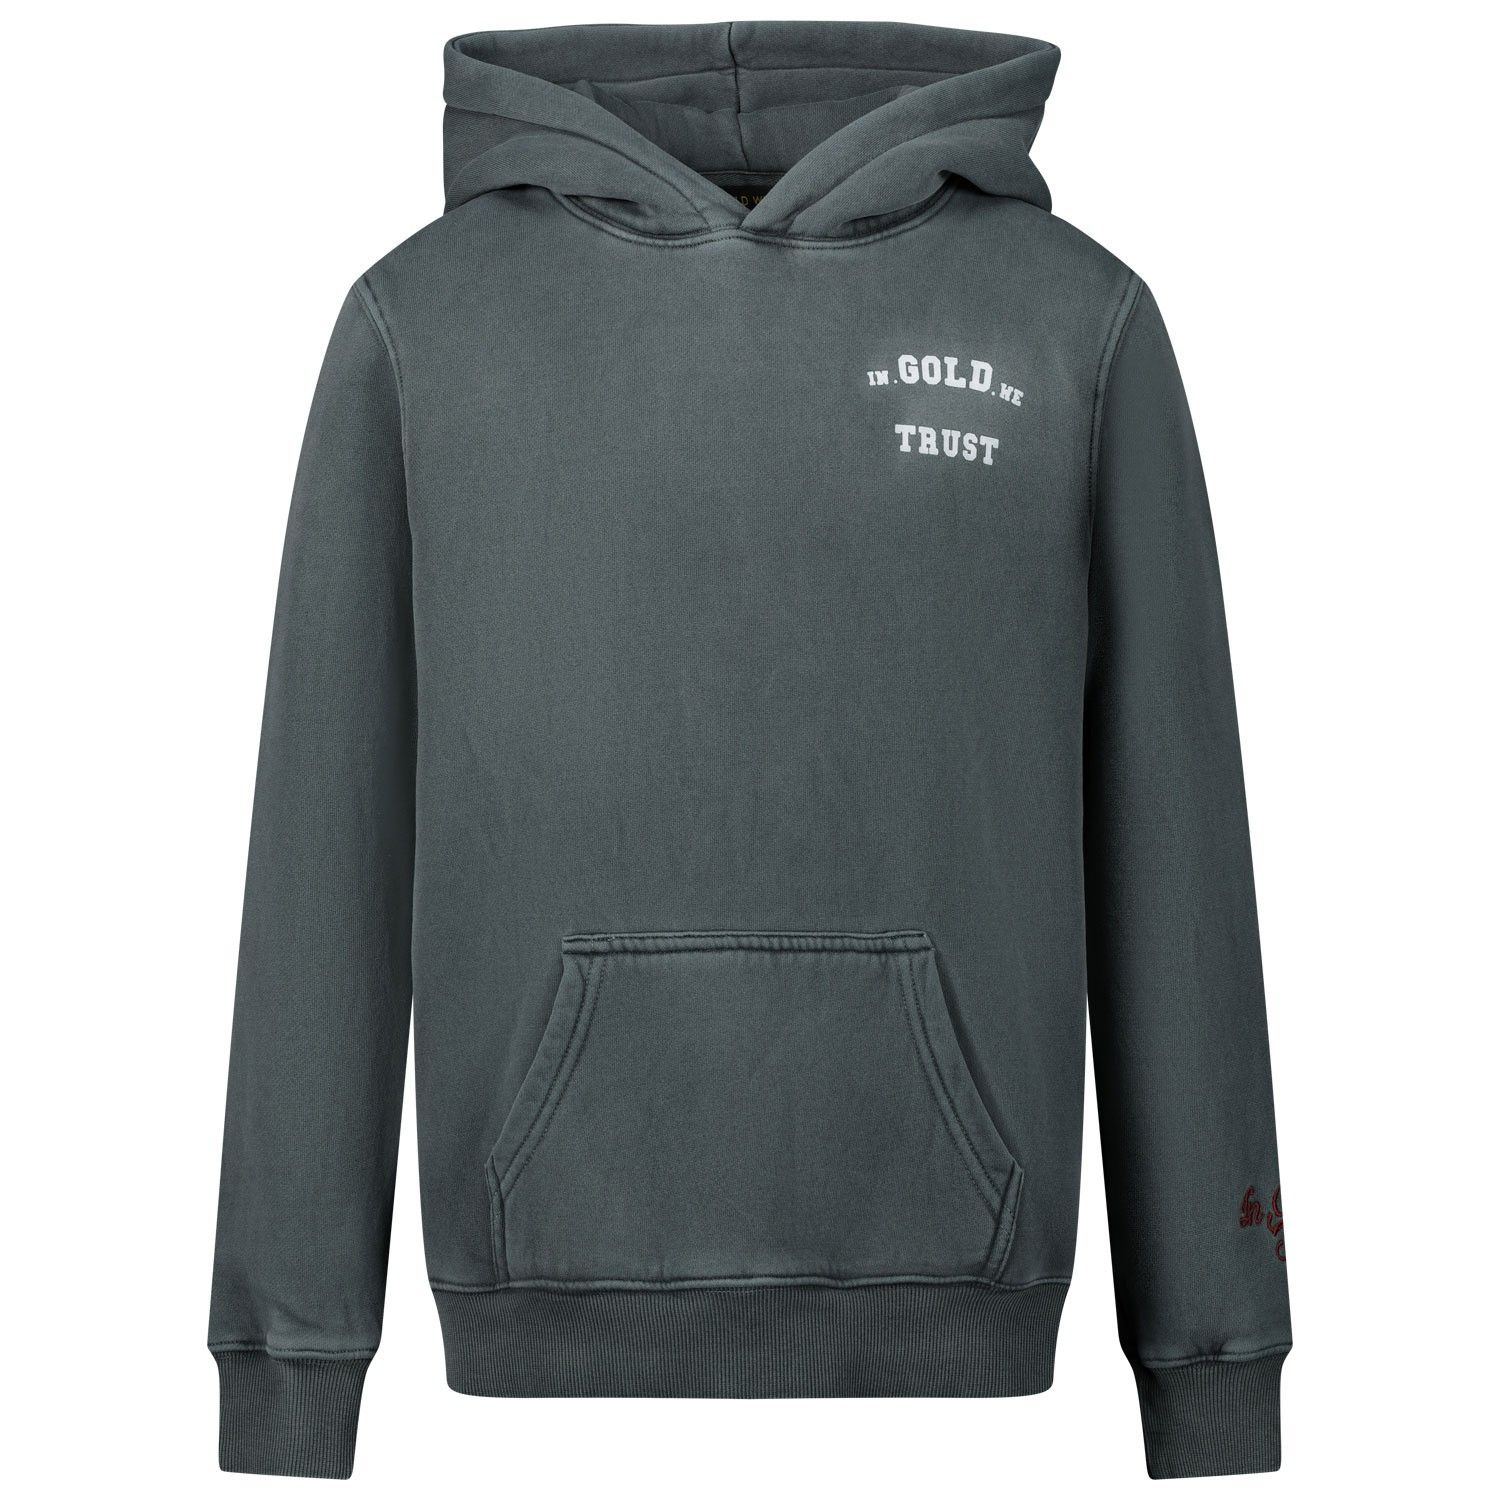 Bild von In Gold We Trust THE UGK HOODIE Kinderpullover Petroleum